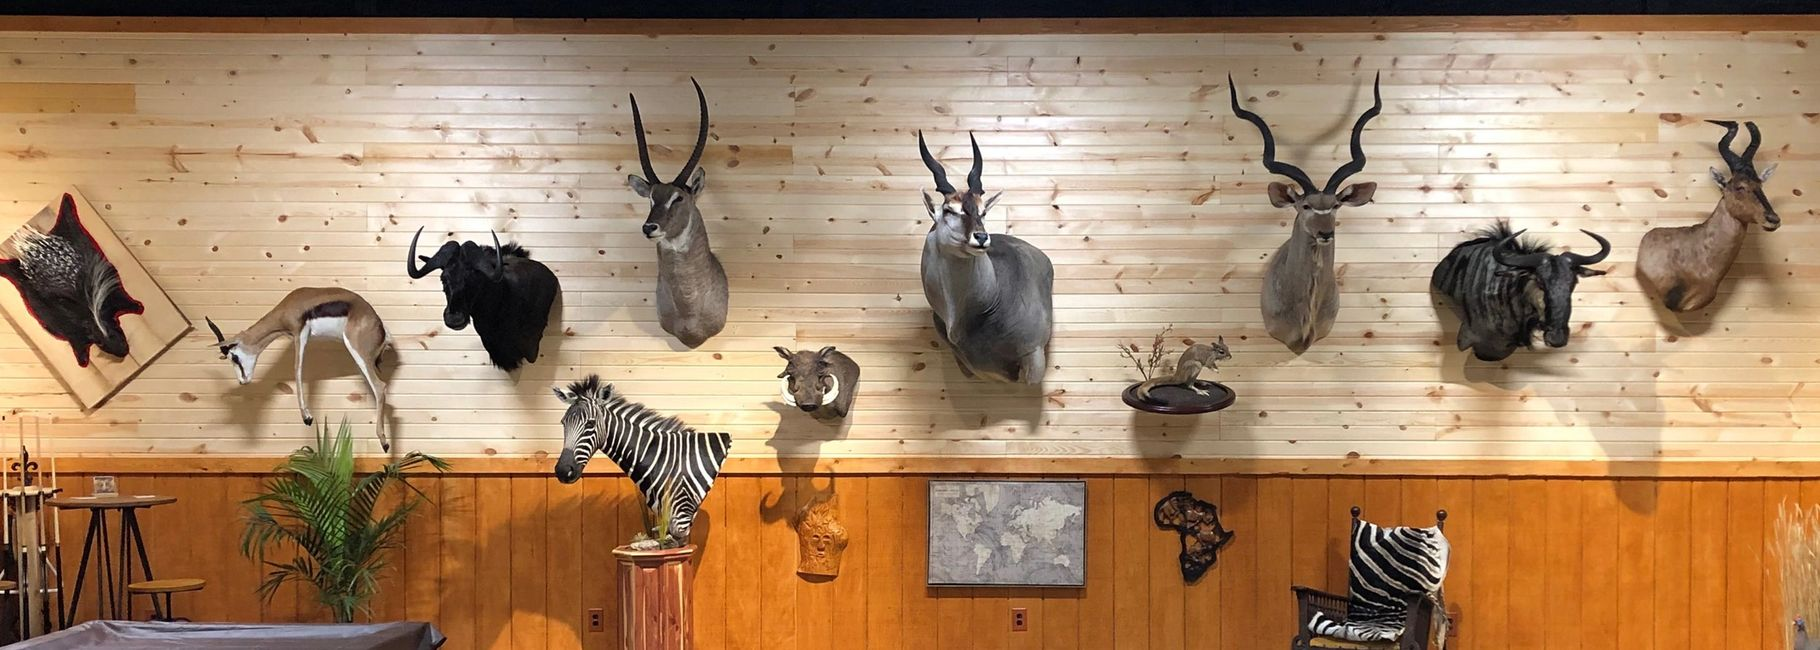 Nature's Image Taxidermy created this trophy room of animals for one of their customers.